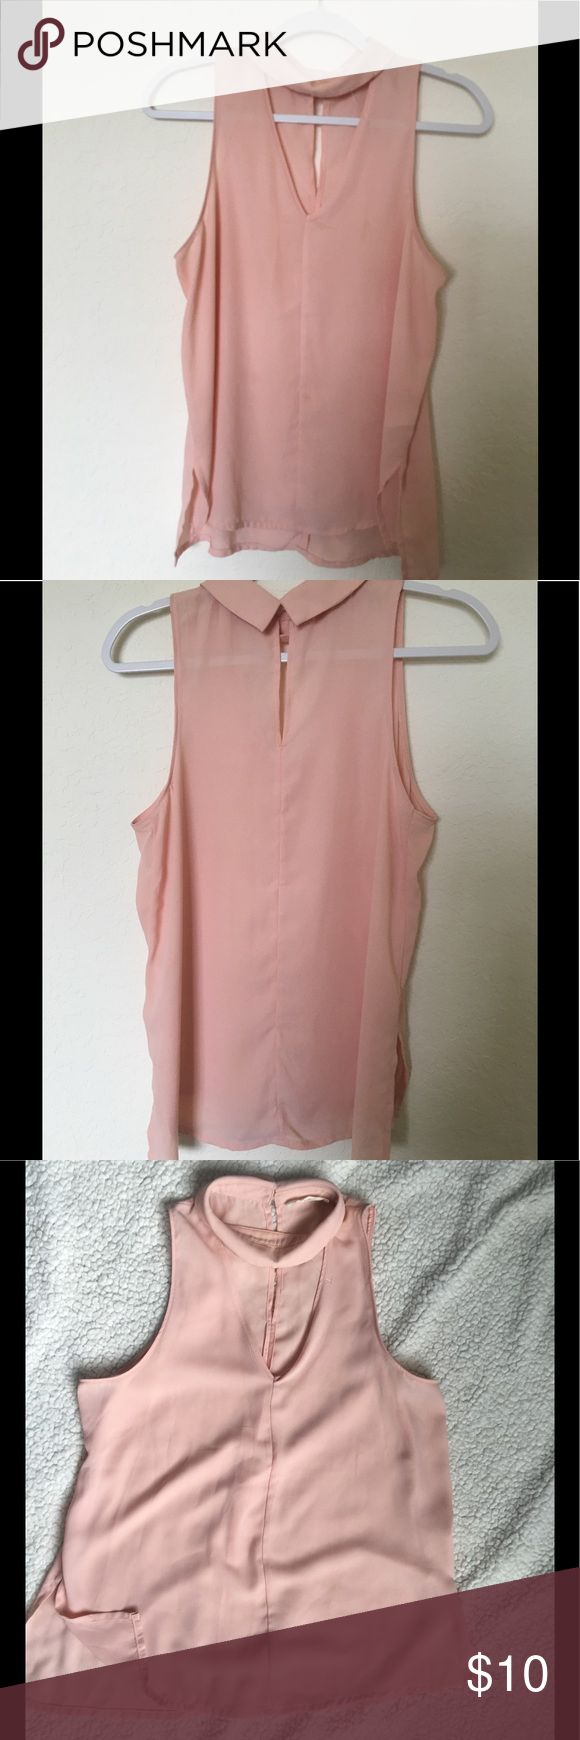 NWOT Eloide shirt Peach color new without tag Elodie. Side slit, flowy, sleeveless shirt. High neck with V neck opening. Elodie Tops Blouses